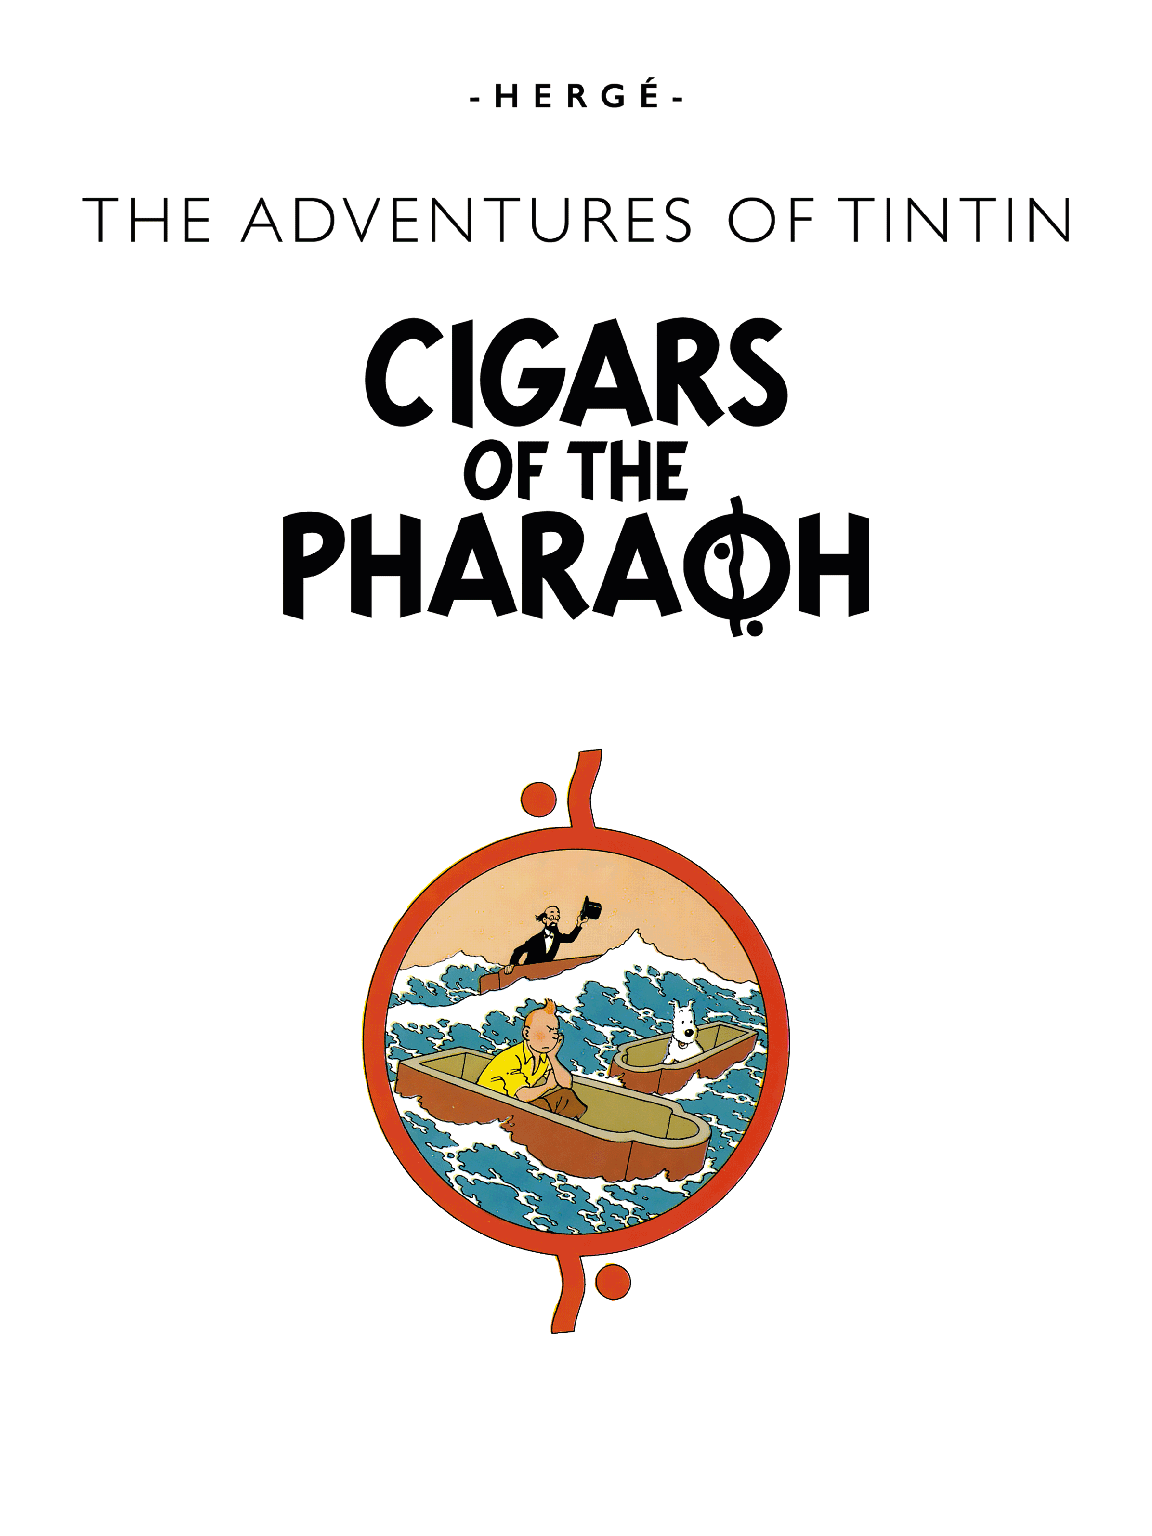 Cigars of the Pharaoh - Title page